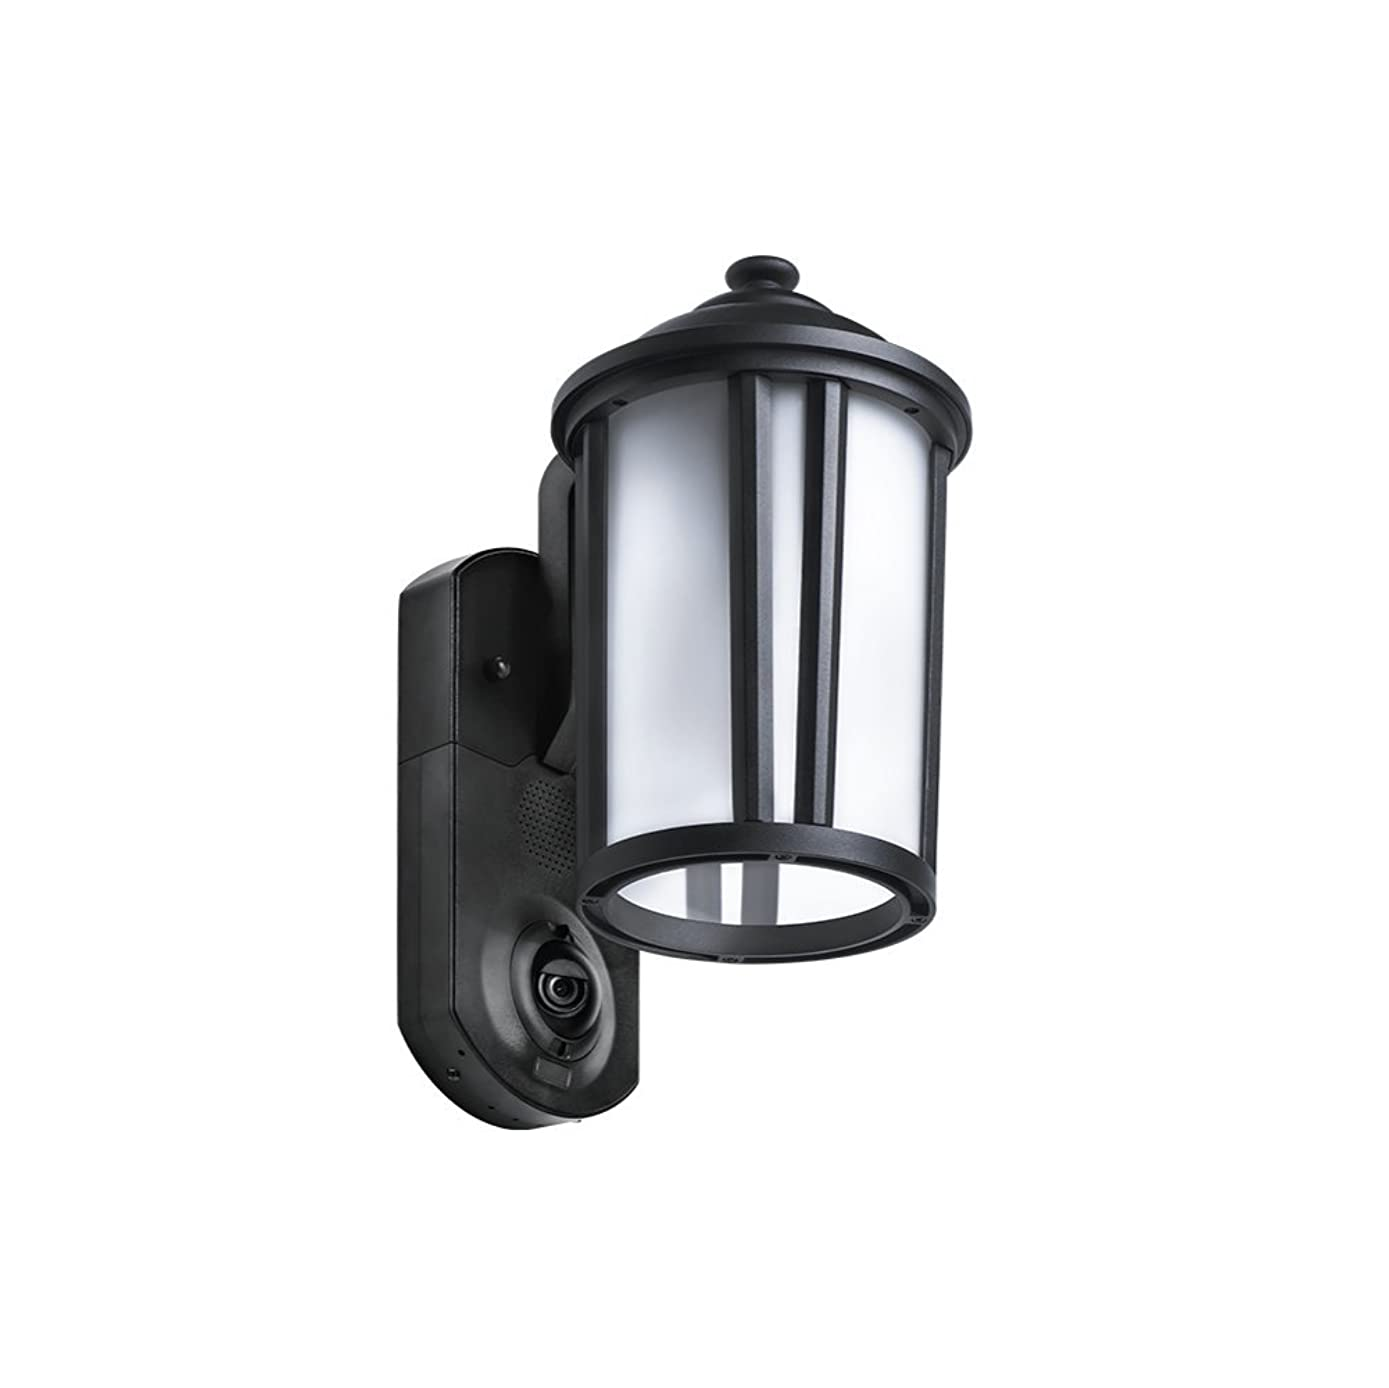 Maximus Video Security Camera & Outdoor Light - Traditional Black - Compatible with Alexa